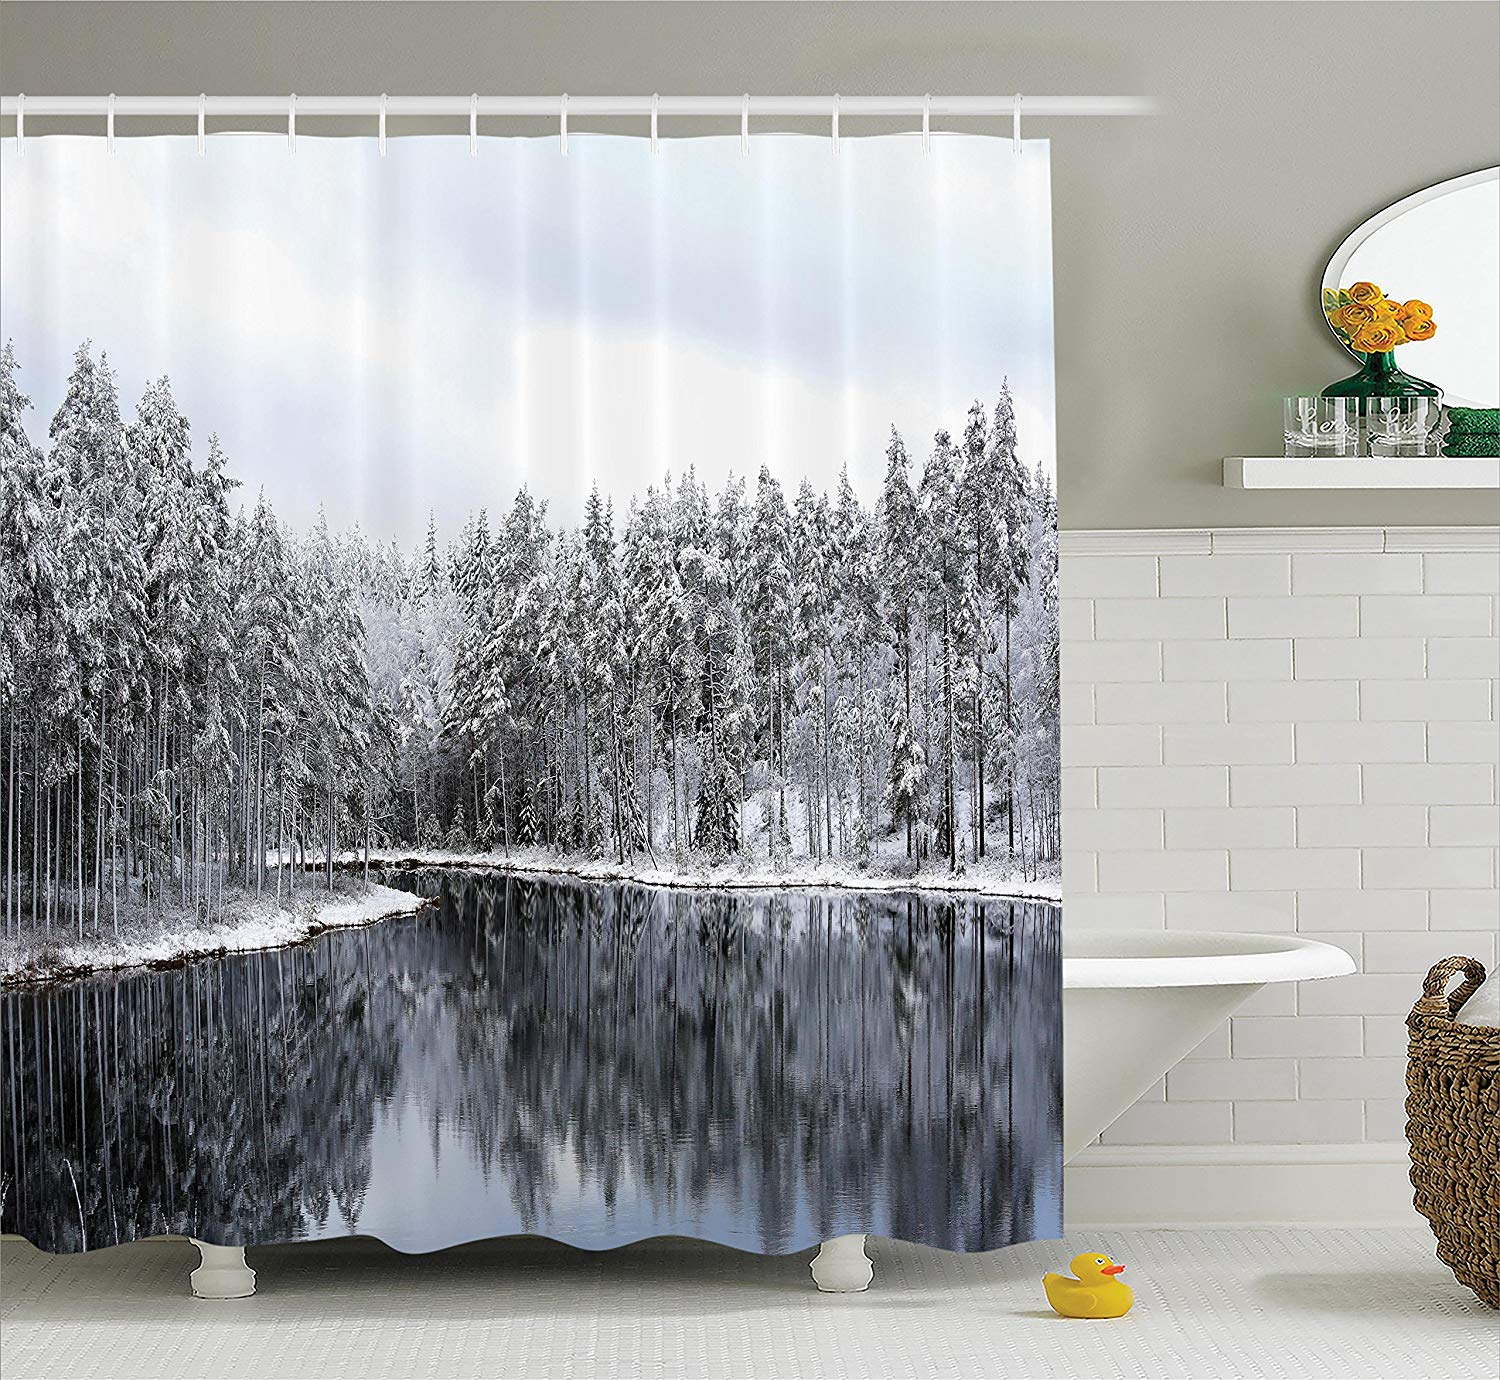 Snowy Trees Shower Curtain Woodland Decor Lake Surrounded By Snow Covered On A Cold Winter Day In Finland Fabric Bath Curtains From Home